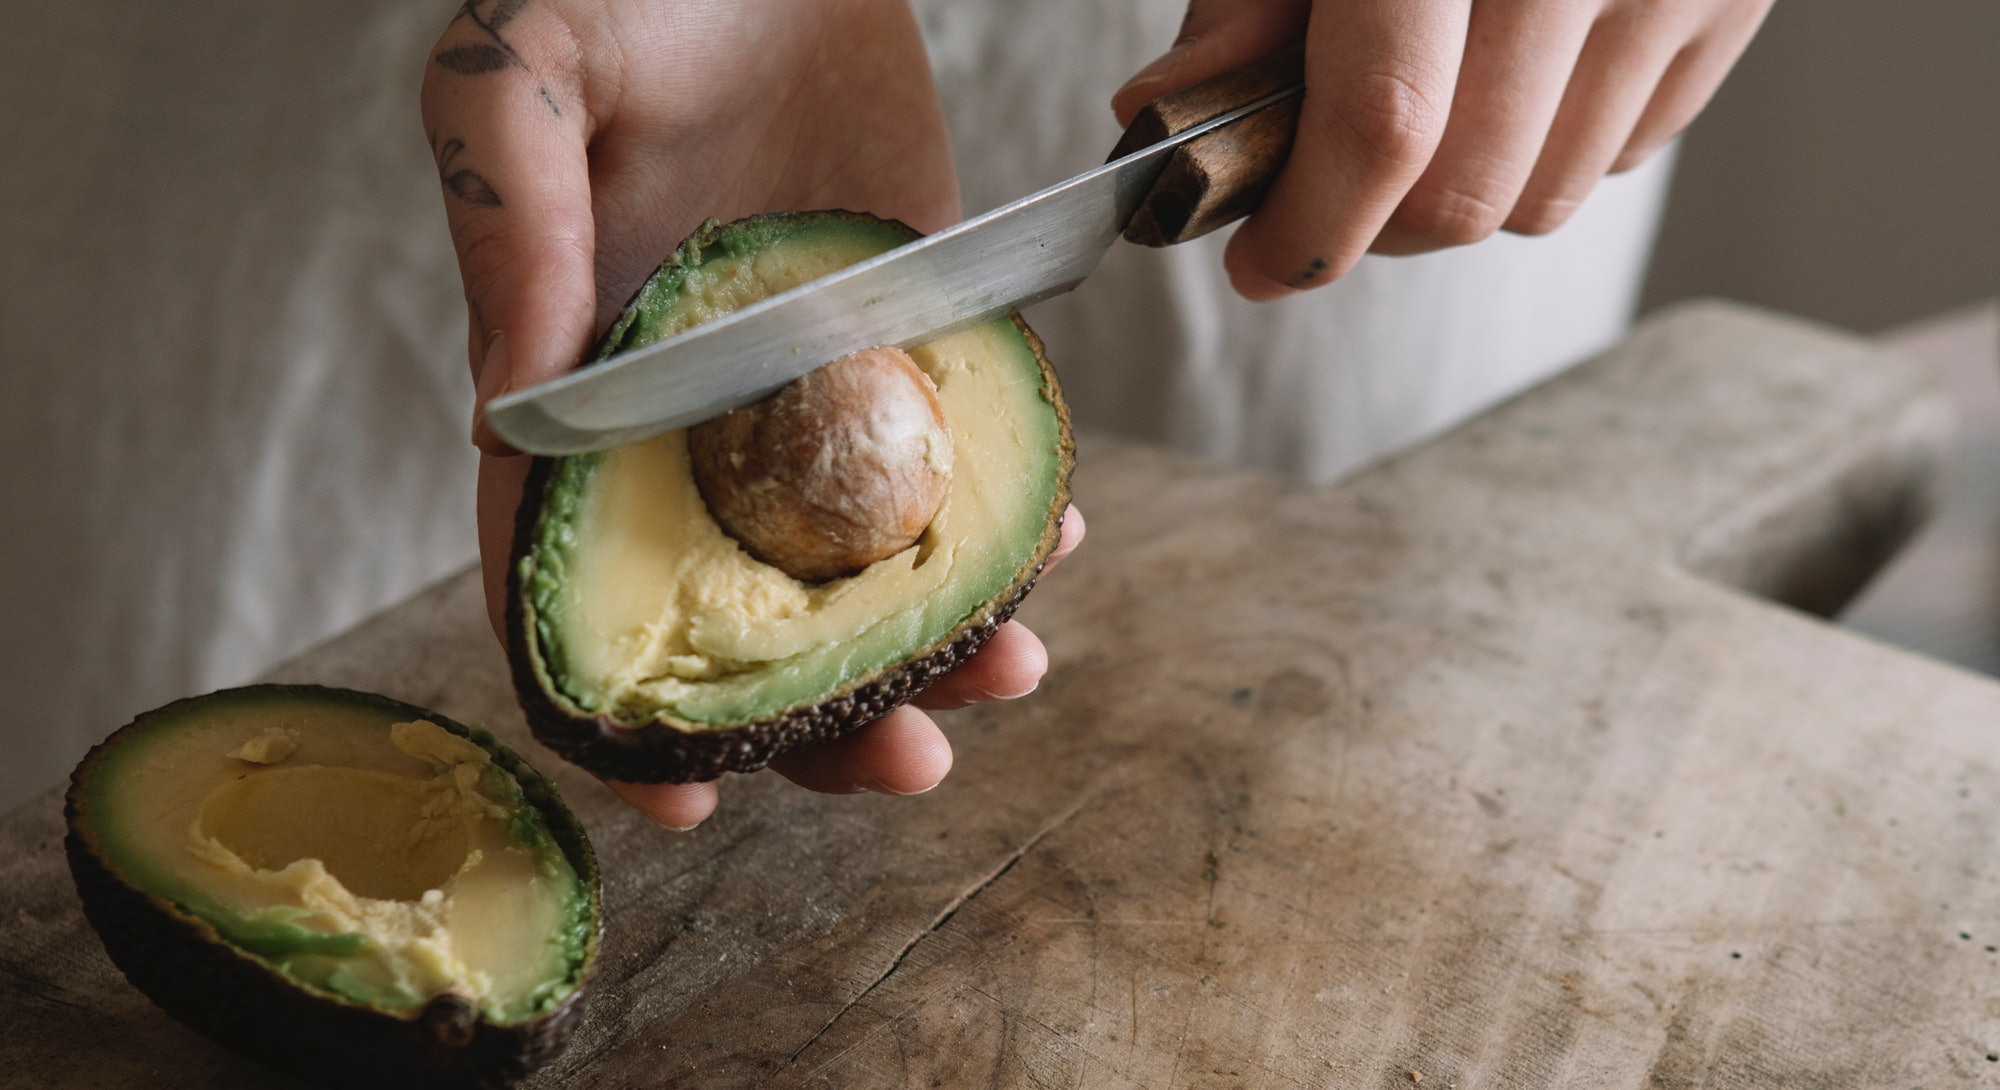 A woman cuts an avocado after a new study found that avocado can help your gut health.